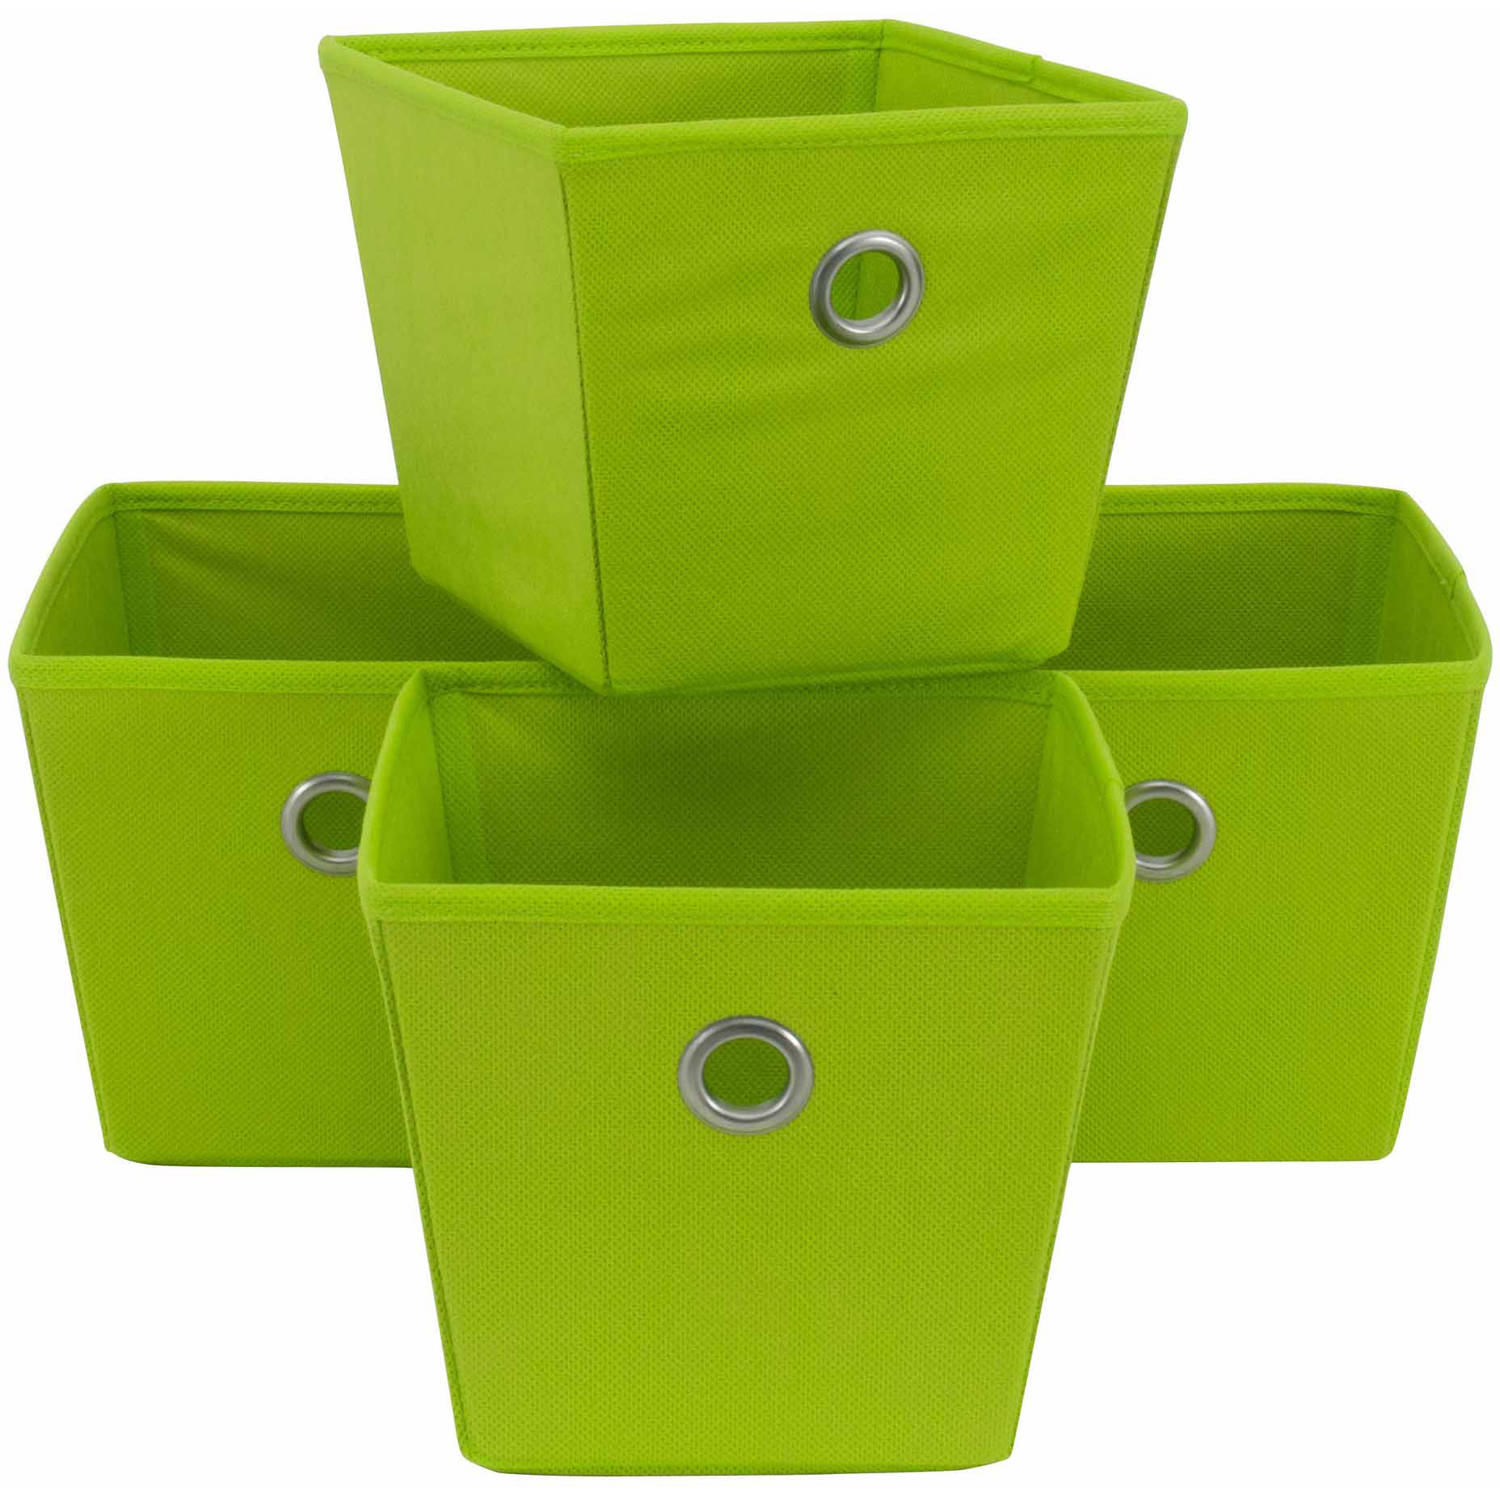 Nice Mainstays Non Woven Bins, 4 Pack, Multiple Colors